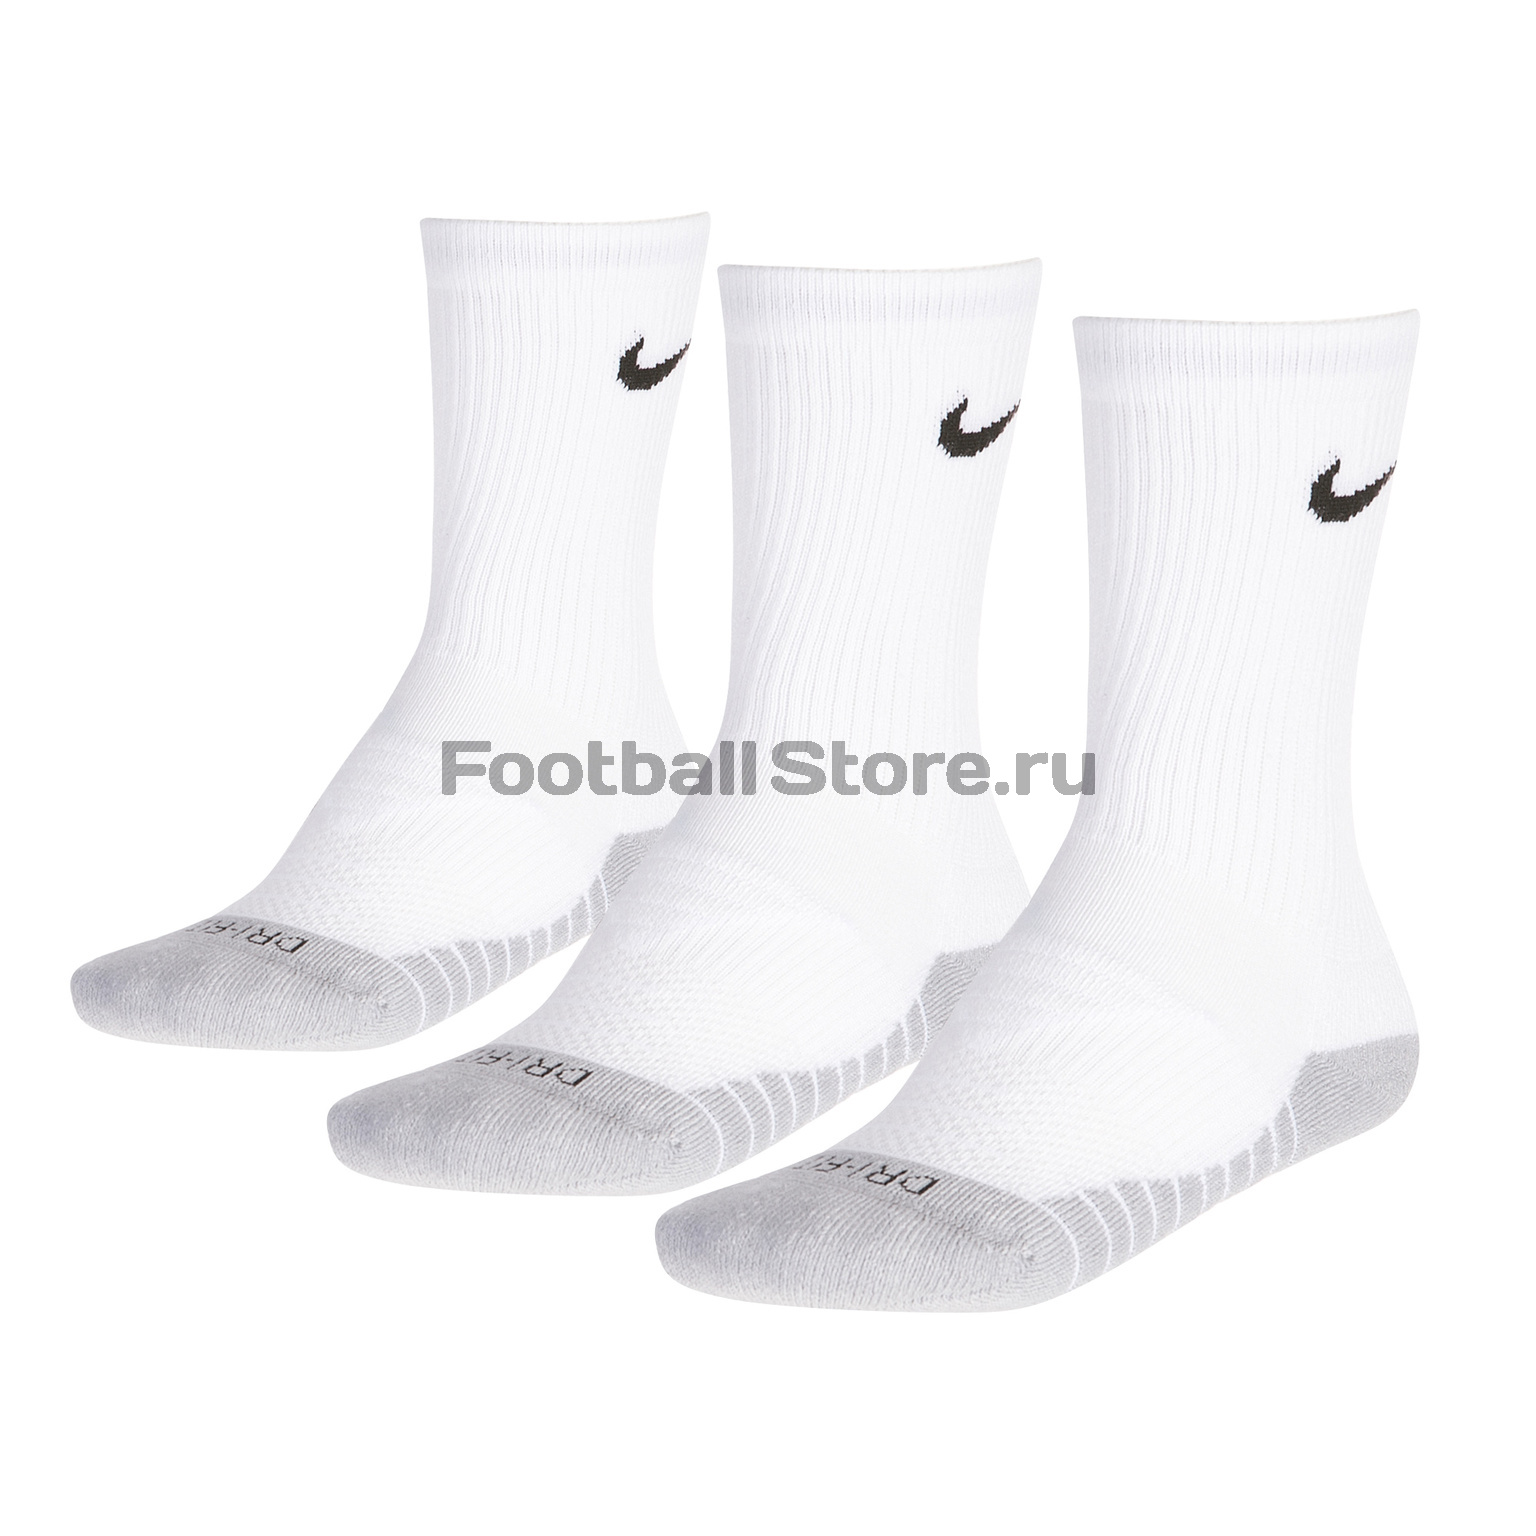 Комплект носков Nike 3PPK Dri-Fit Cushion Crew SX5547-100 комплект носков nike 3ppk lightweight quarter